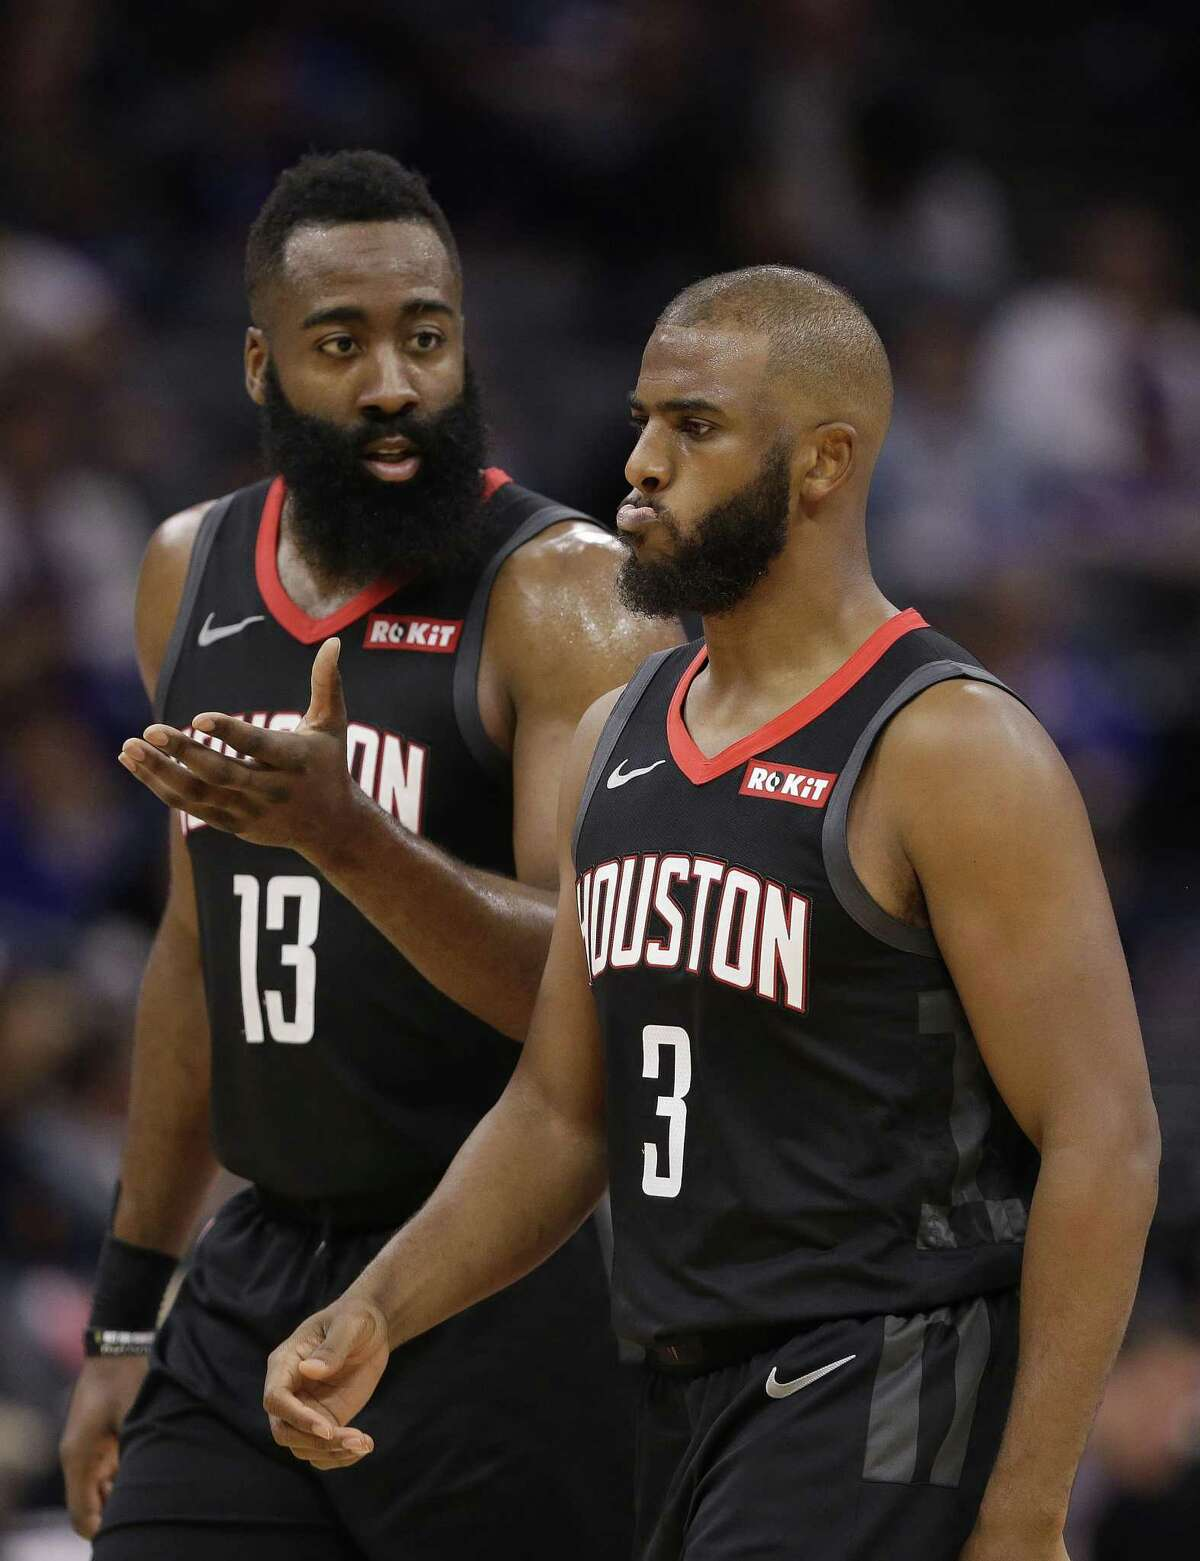 16. James Harden, G, Rockets Year: 2016 Single-season base salary: $15,756,438 >>>Check out which members of the Rockets, Astros and Texans earned the highest single-season salaries this decade.